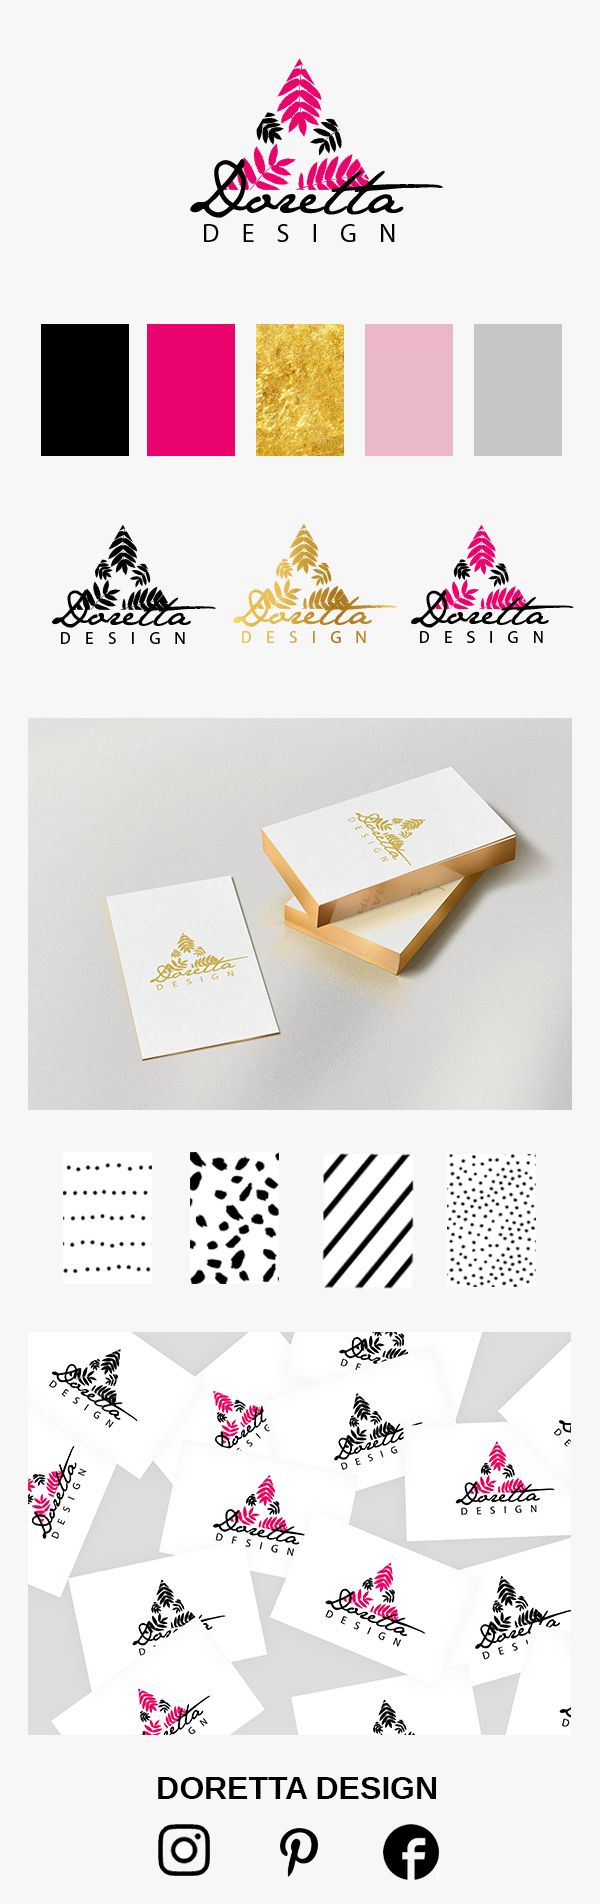 My corporate identity with logo, business cards, and patterns.